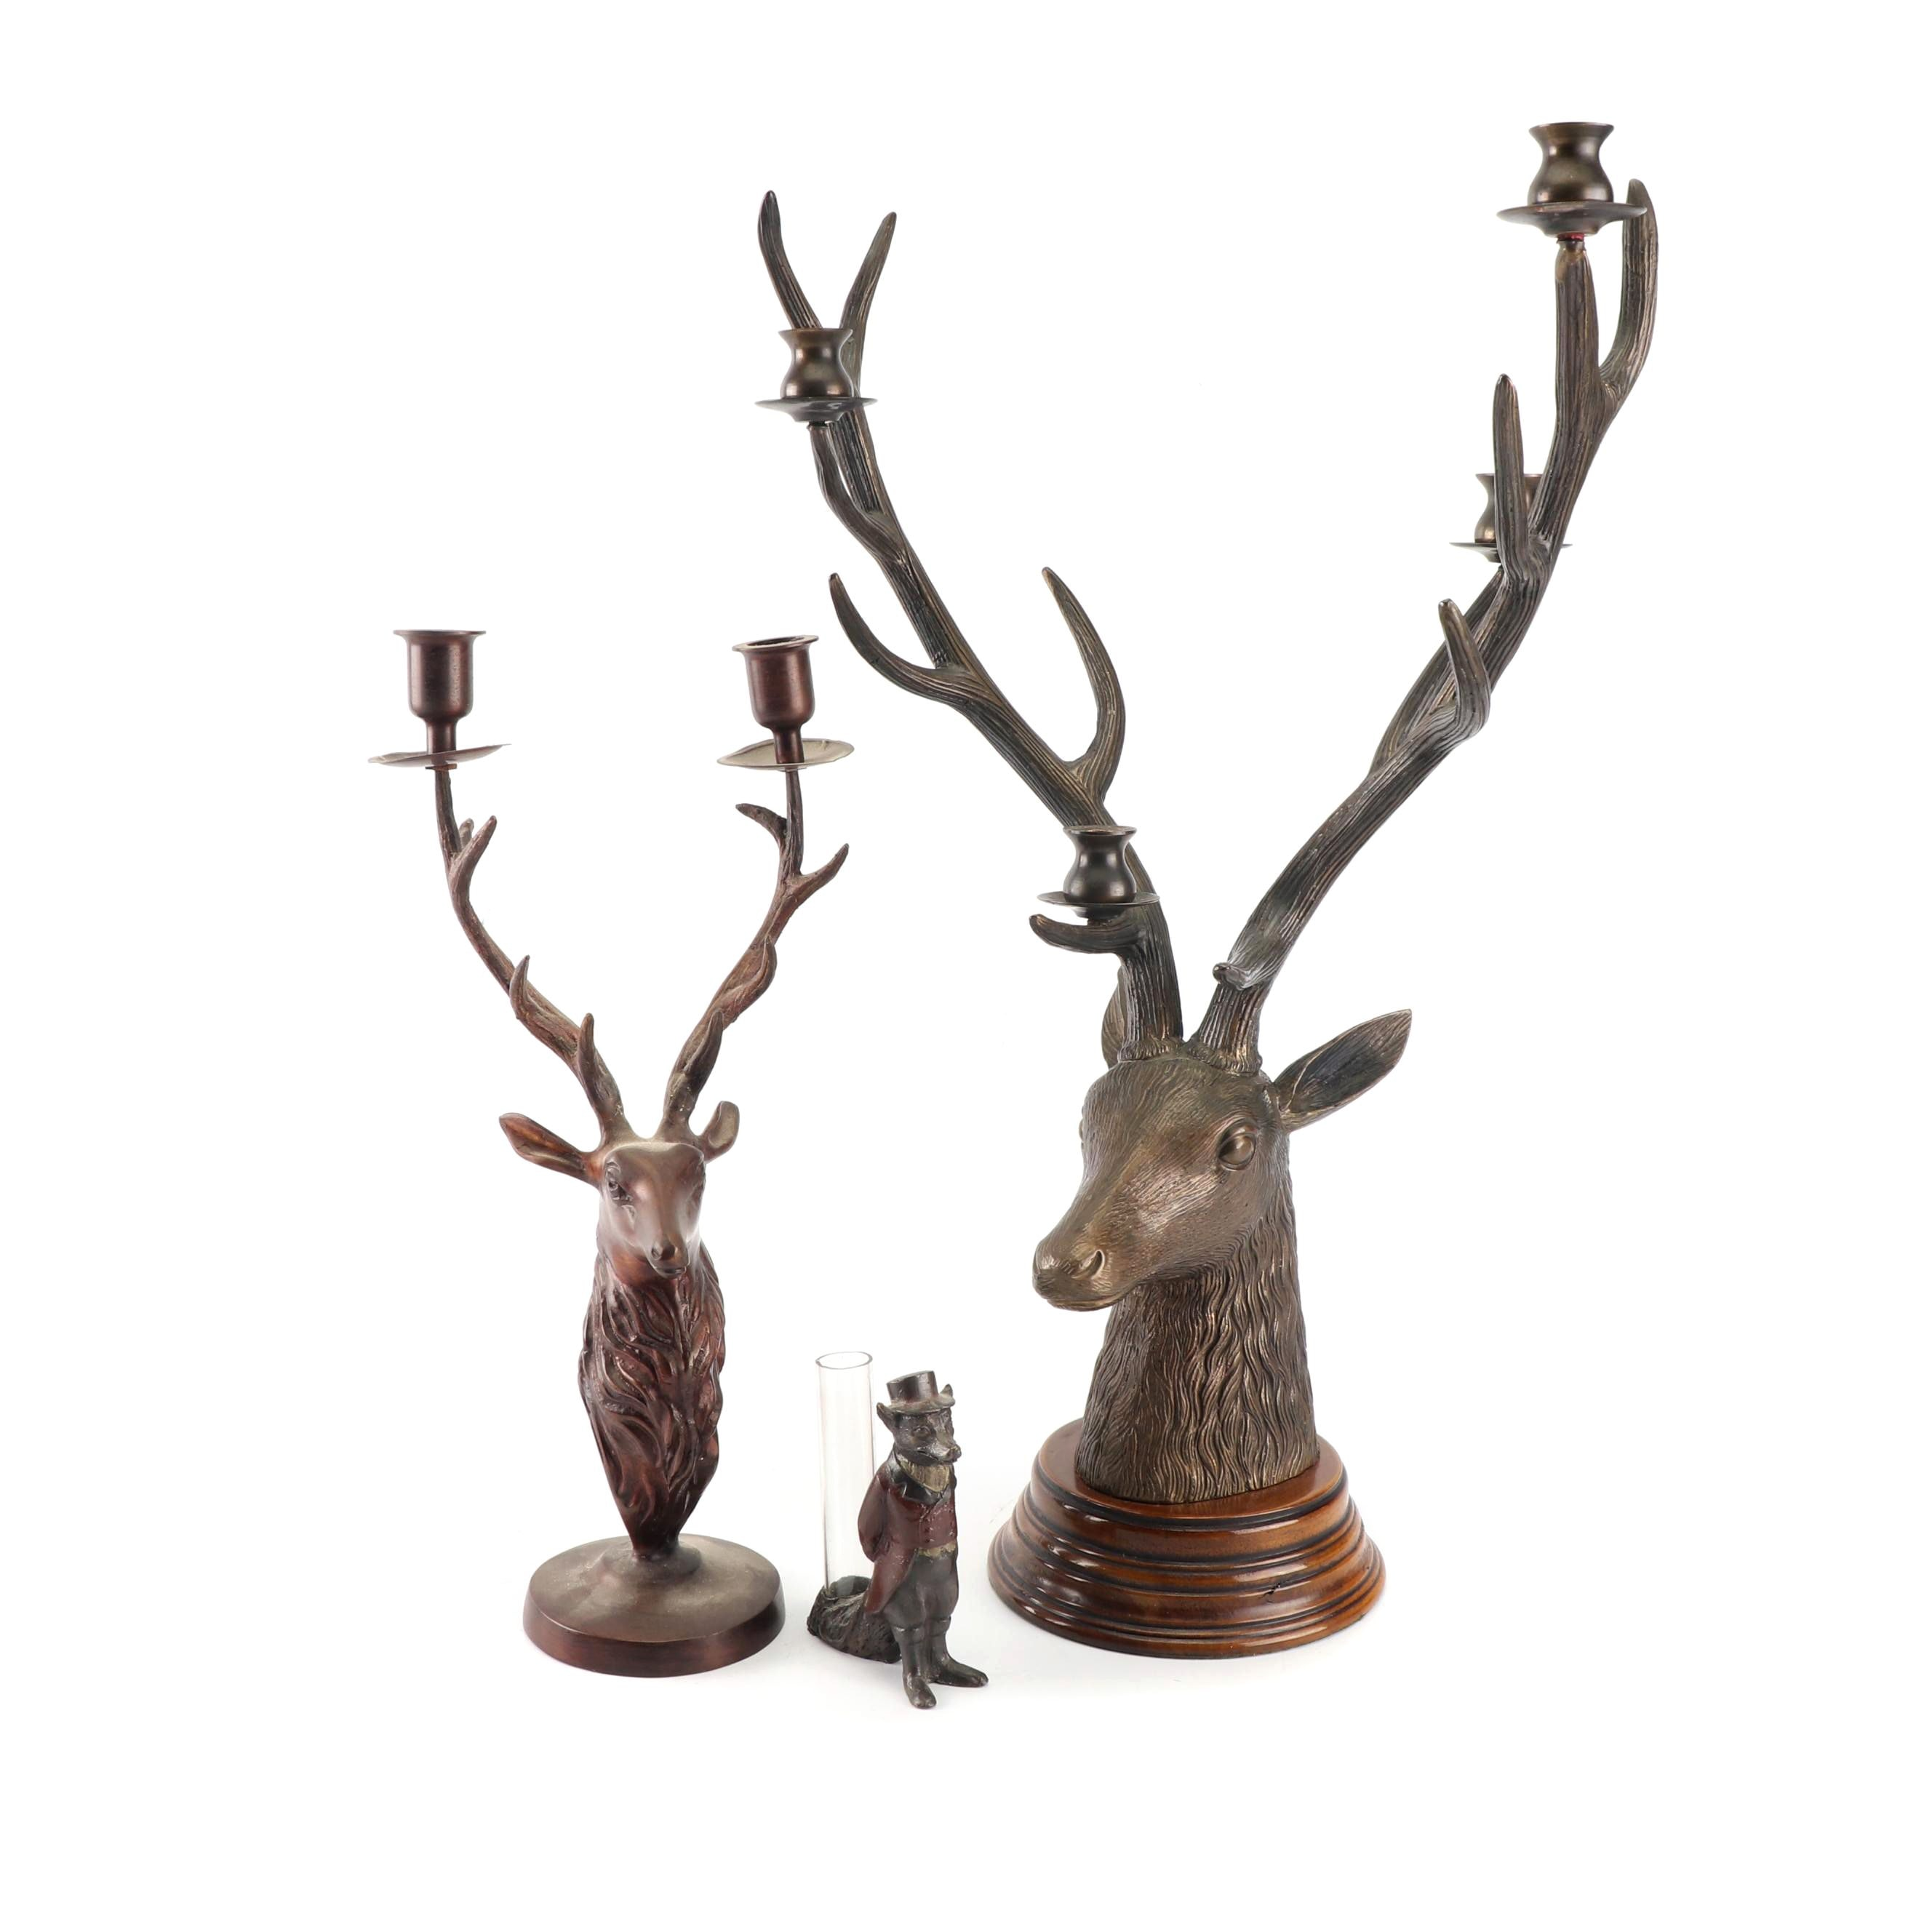 Metal Stag Head Candelabras with Fox Bud Vase